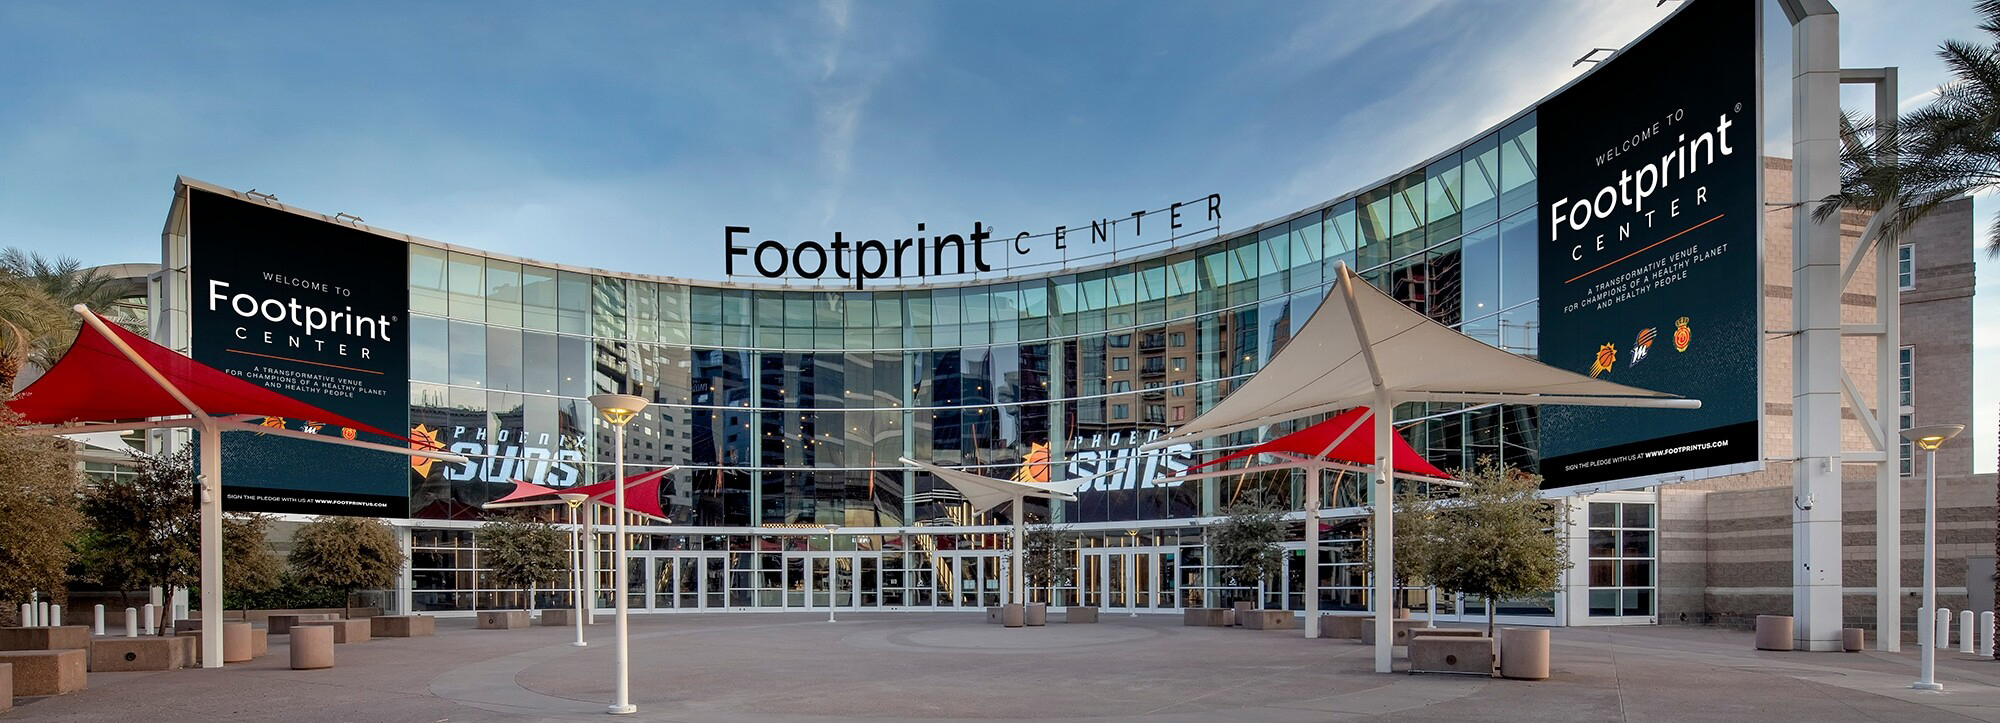 Footprint will be the latest company with its name on the marquee of the downtown arena, following America West, USAirways and Talking Stick Resort. (Photo courtesy of Suns Legacy Partners and Footprint)